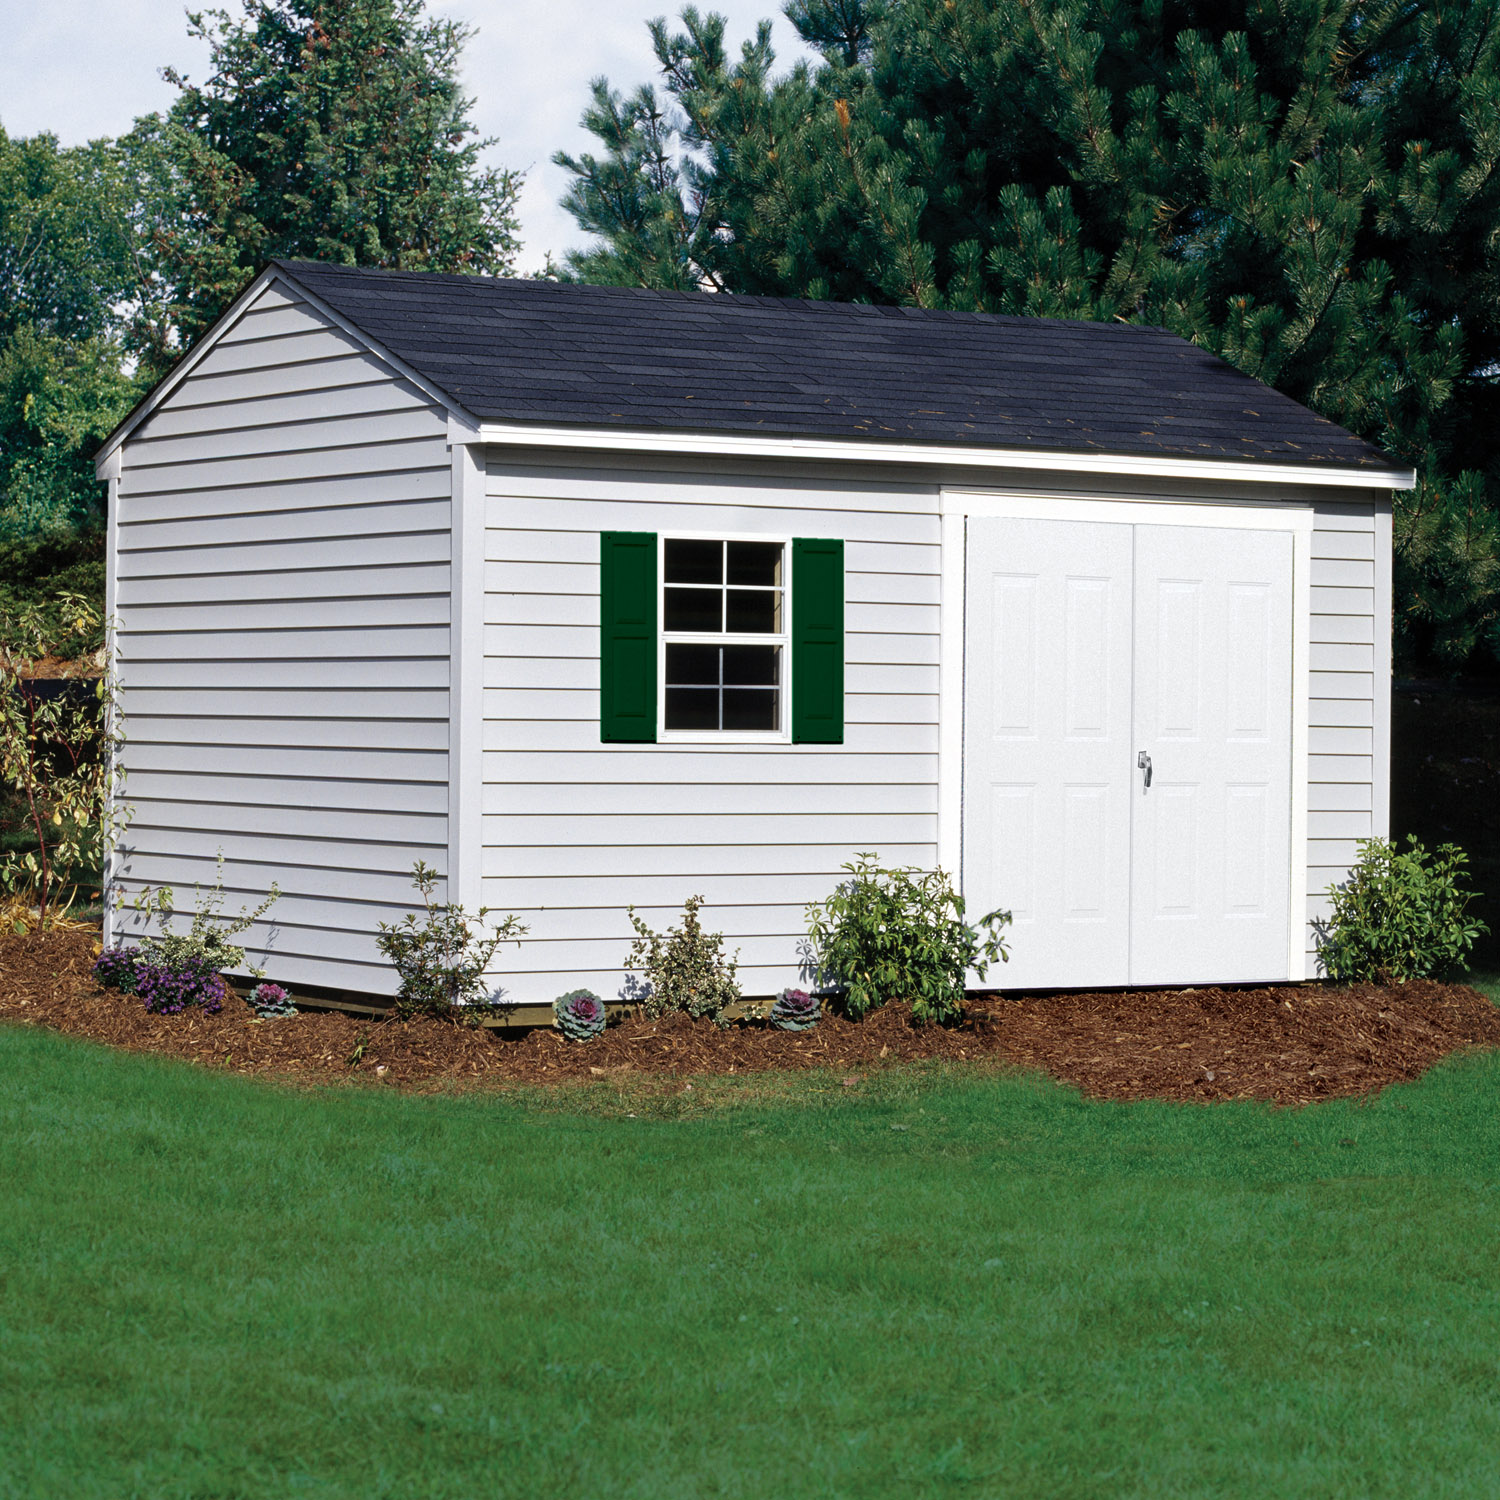 Garden Sheds Marietta Ga sheds marietta ga throughout inspiration